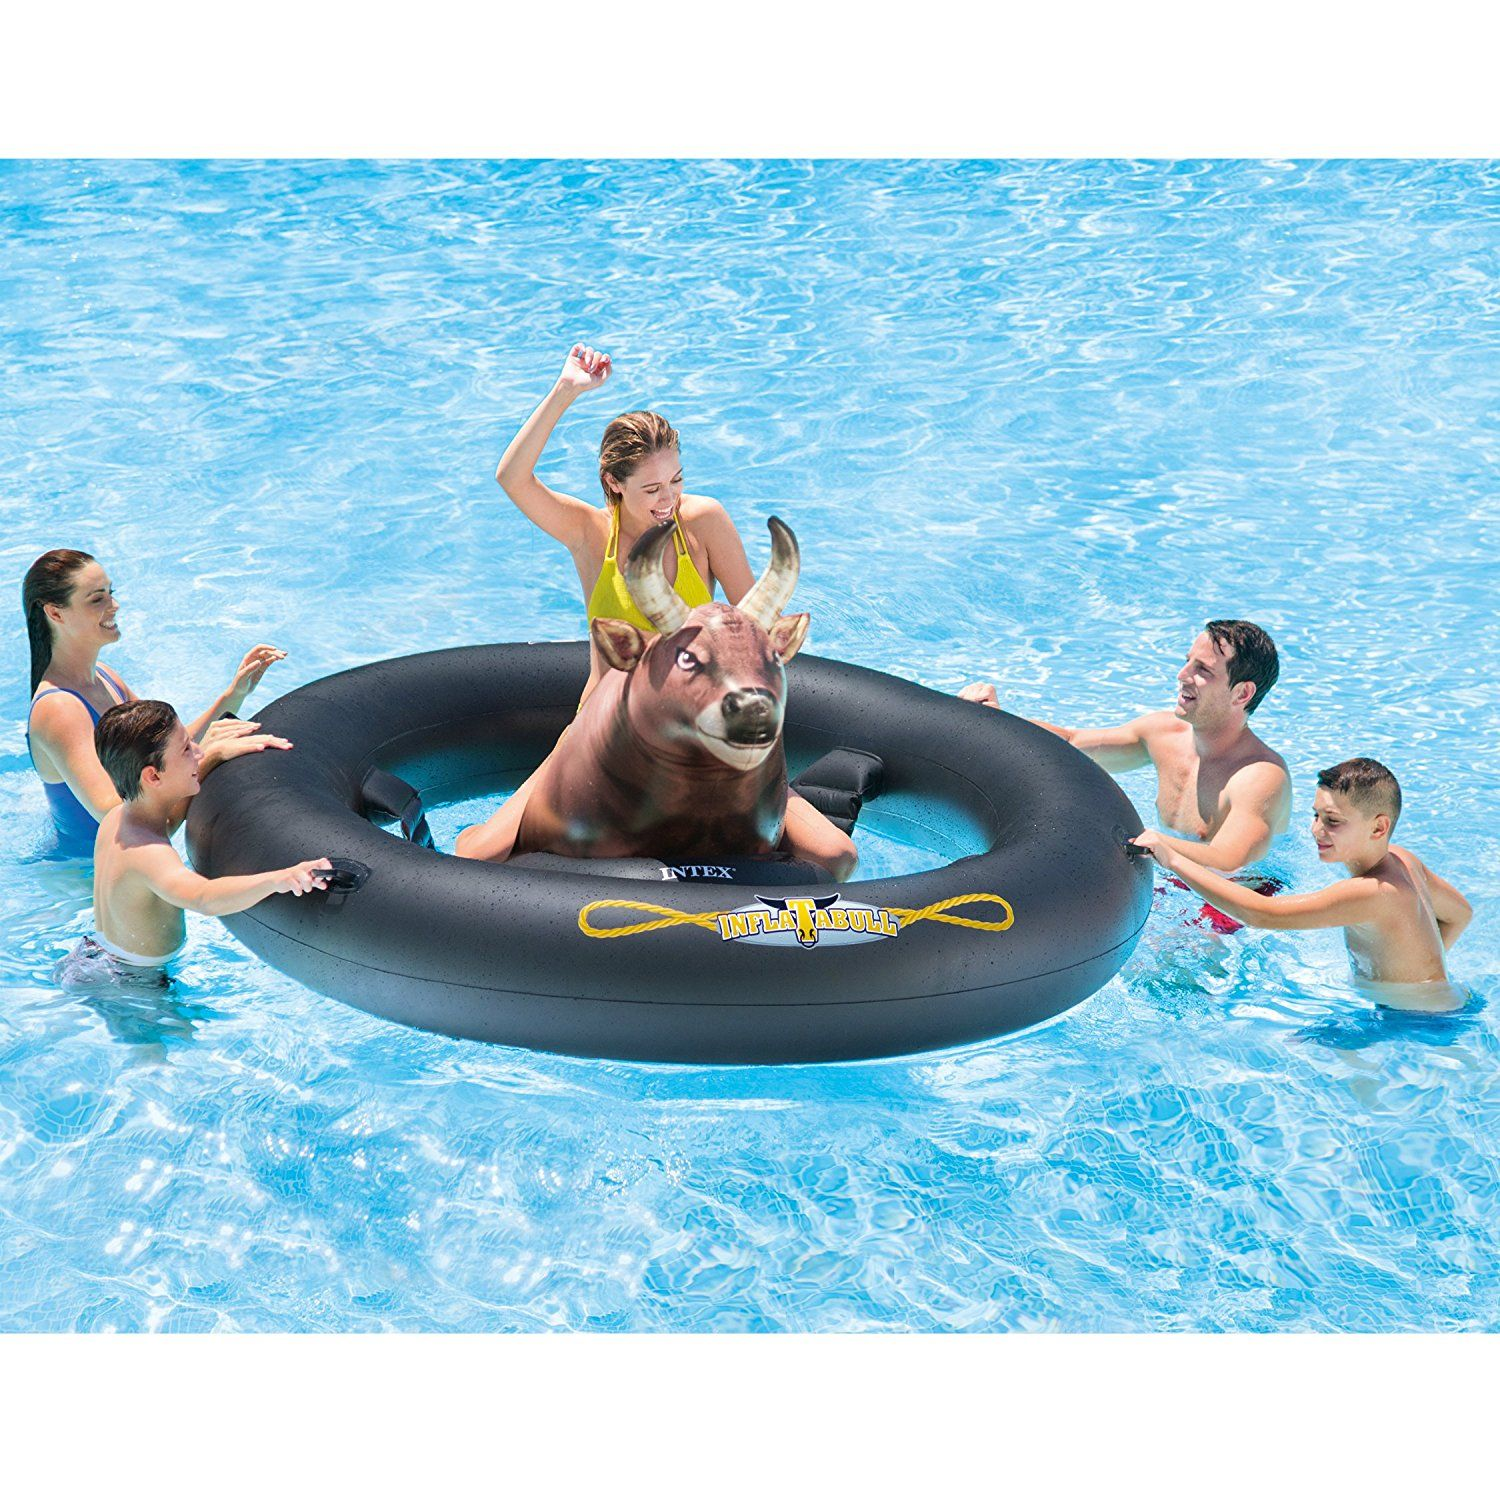 Inflat A Bull Is An Inflatable Bull Riding Pool Toy You ll Enjoy